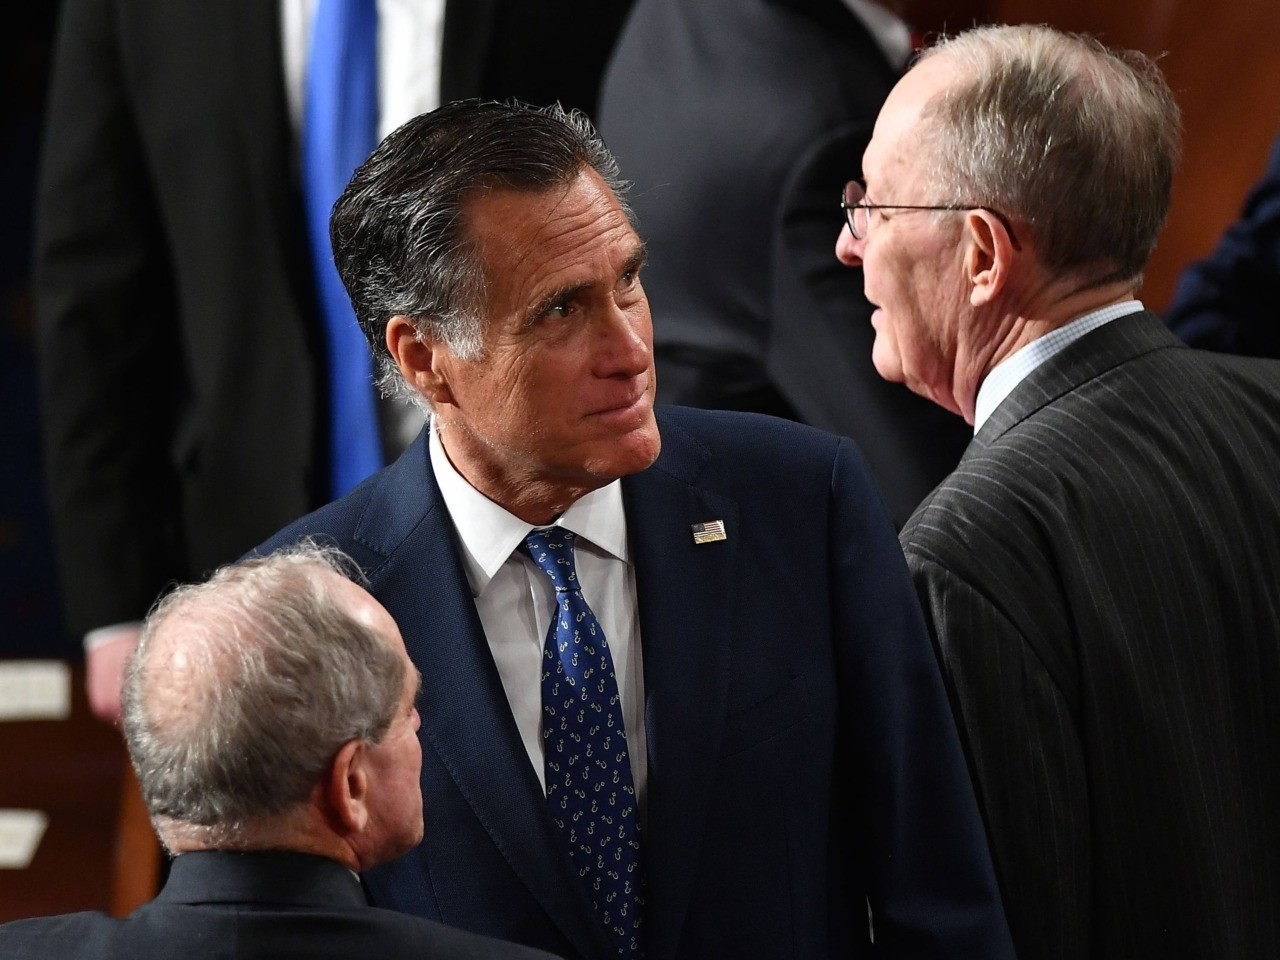 Mitt Romney at State of the Union (Mandel Ngan / AFP / Getty)